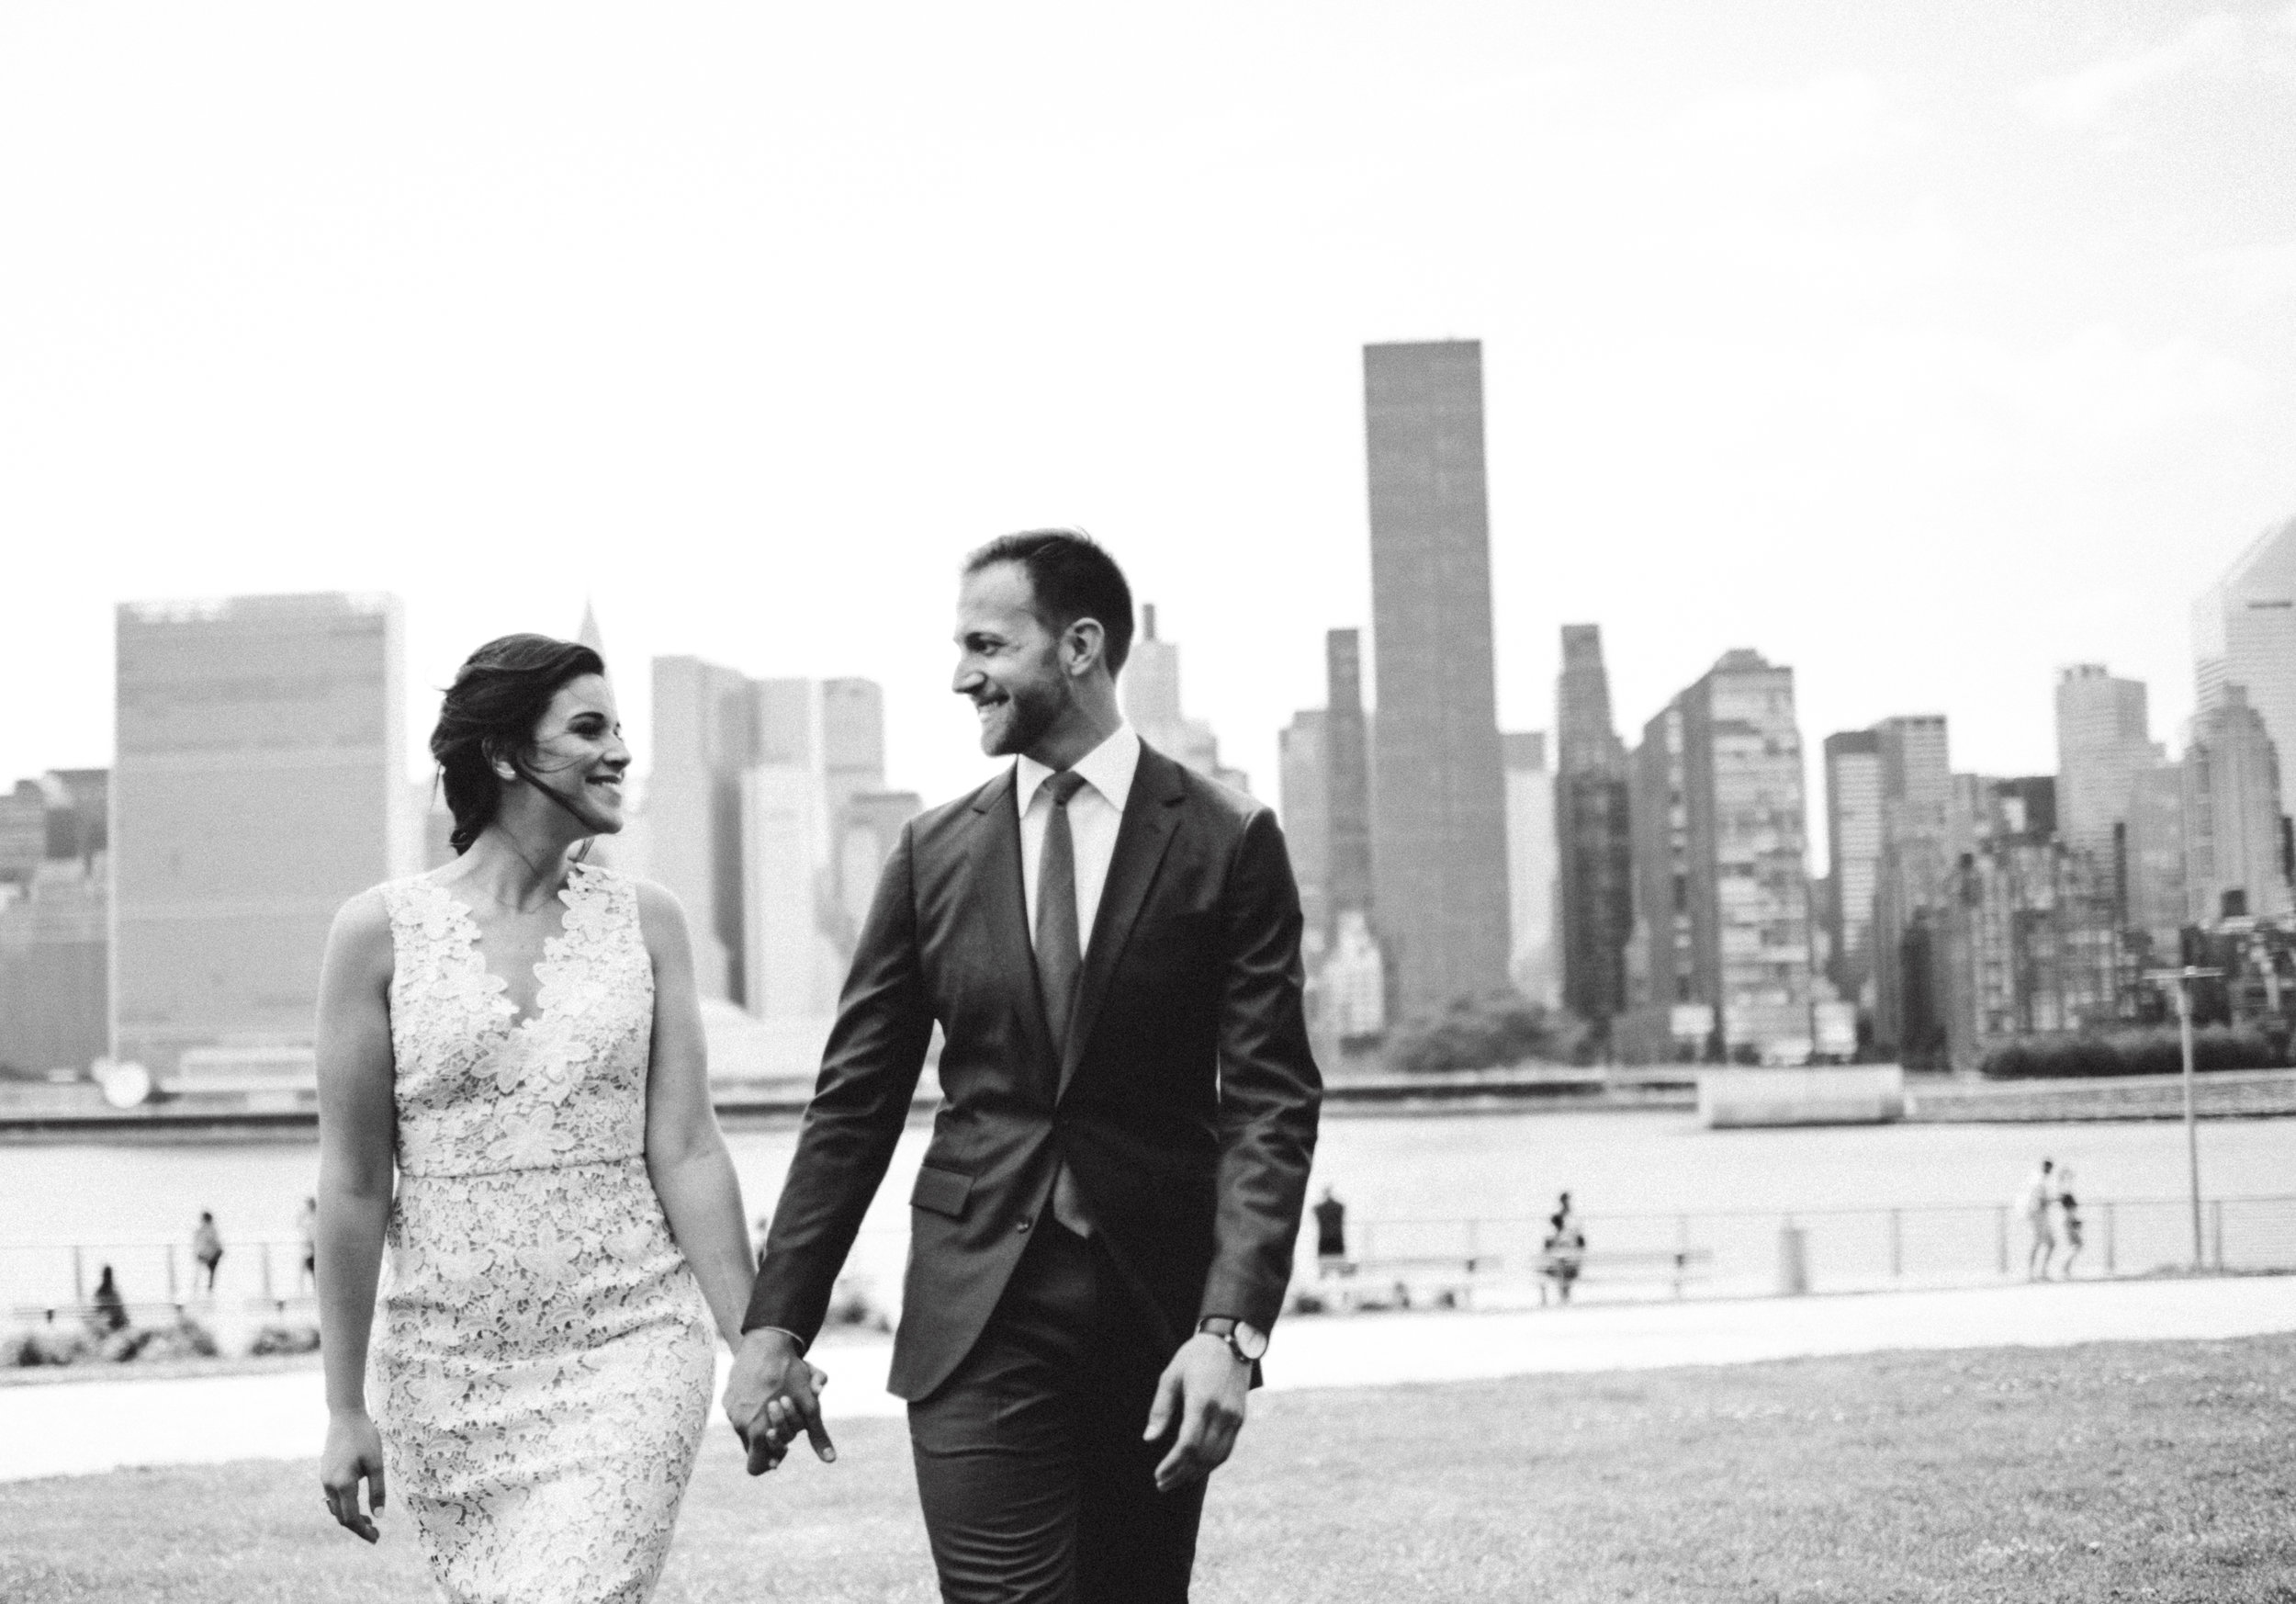 AMANDA & MATT - LE FANFARE NYC - INTIMATE WEDDING PHOTOGRAPHER by CHI-CHI ARI-180.jpg